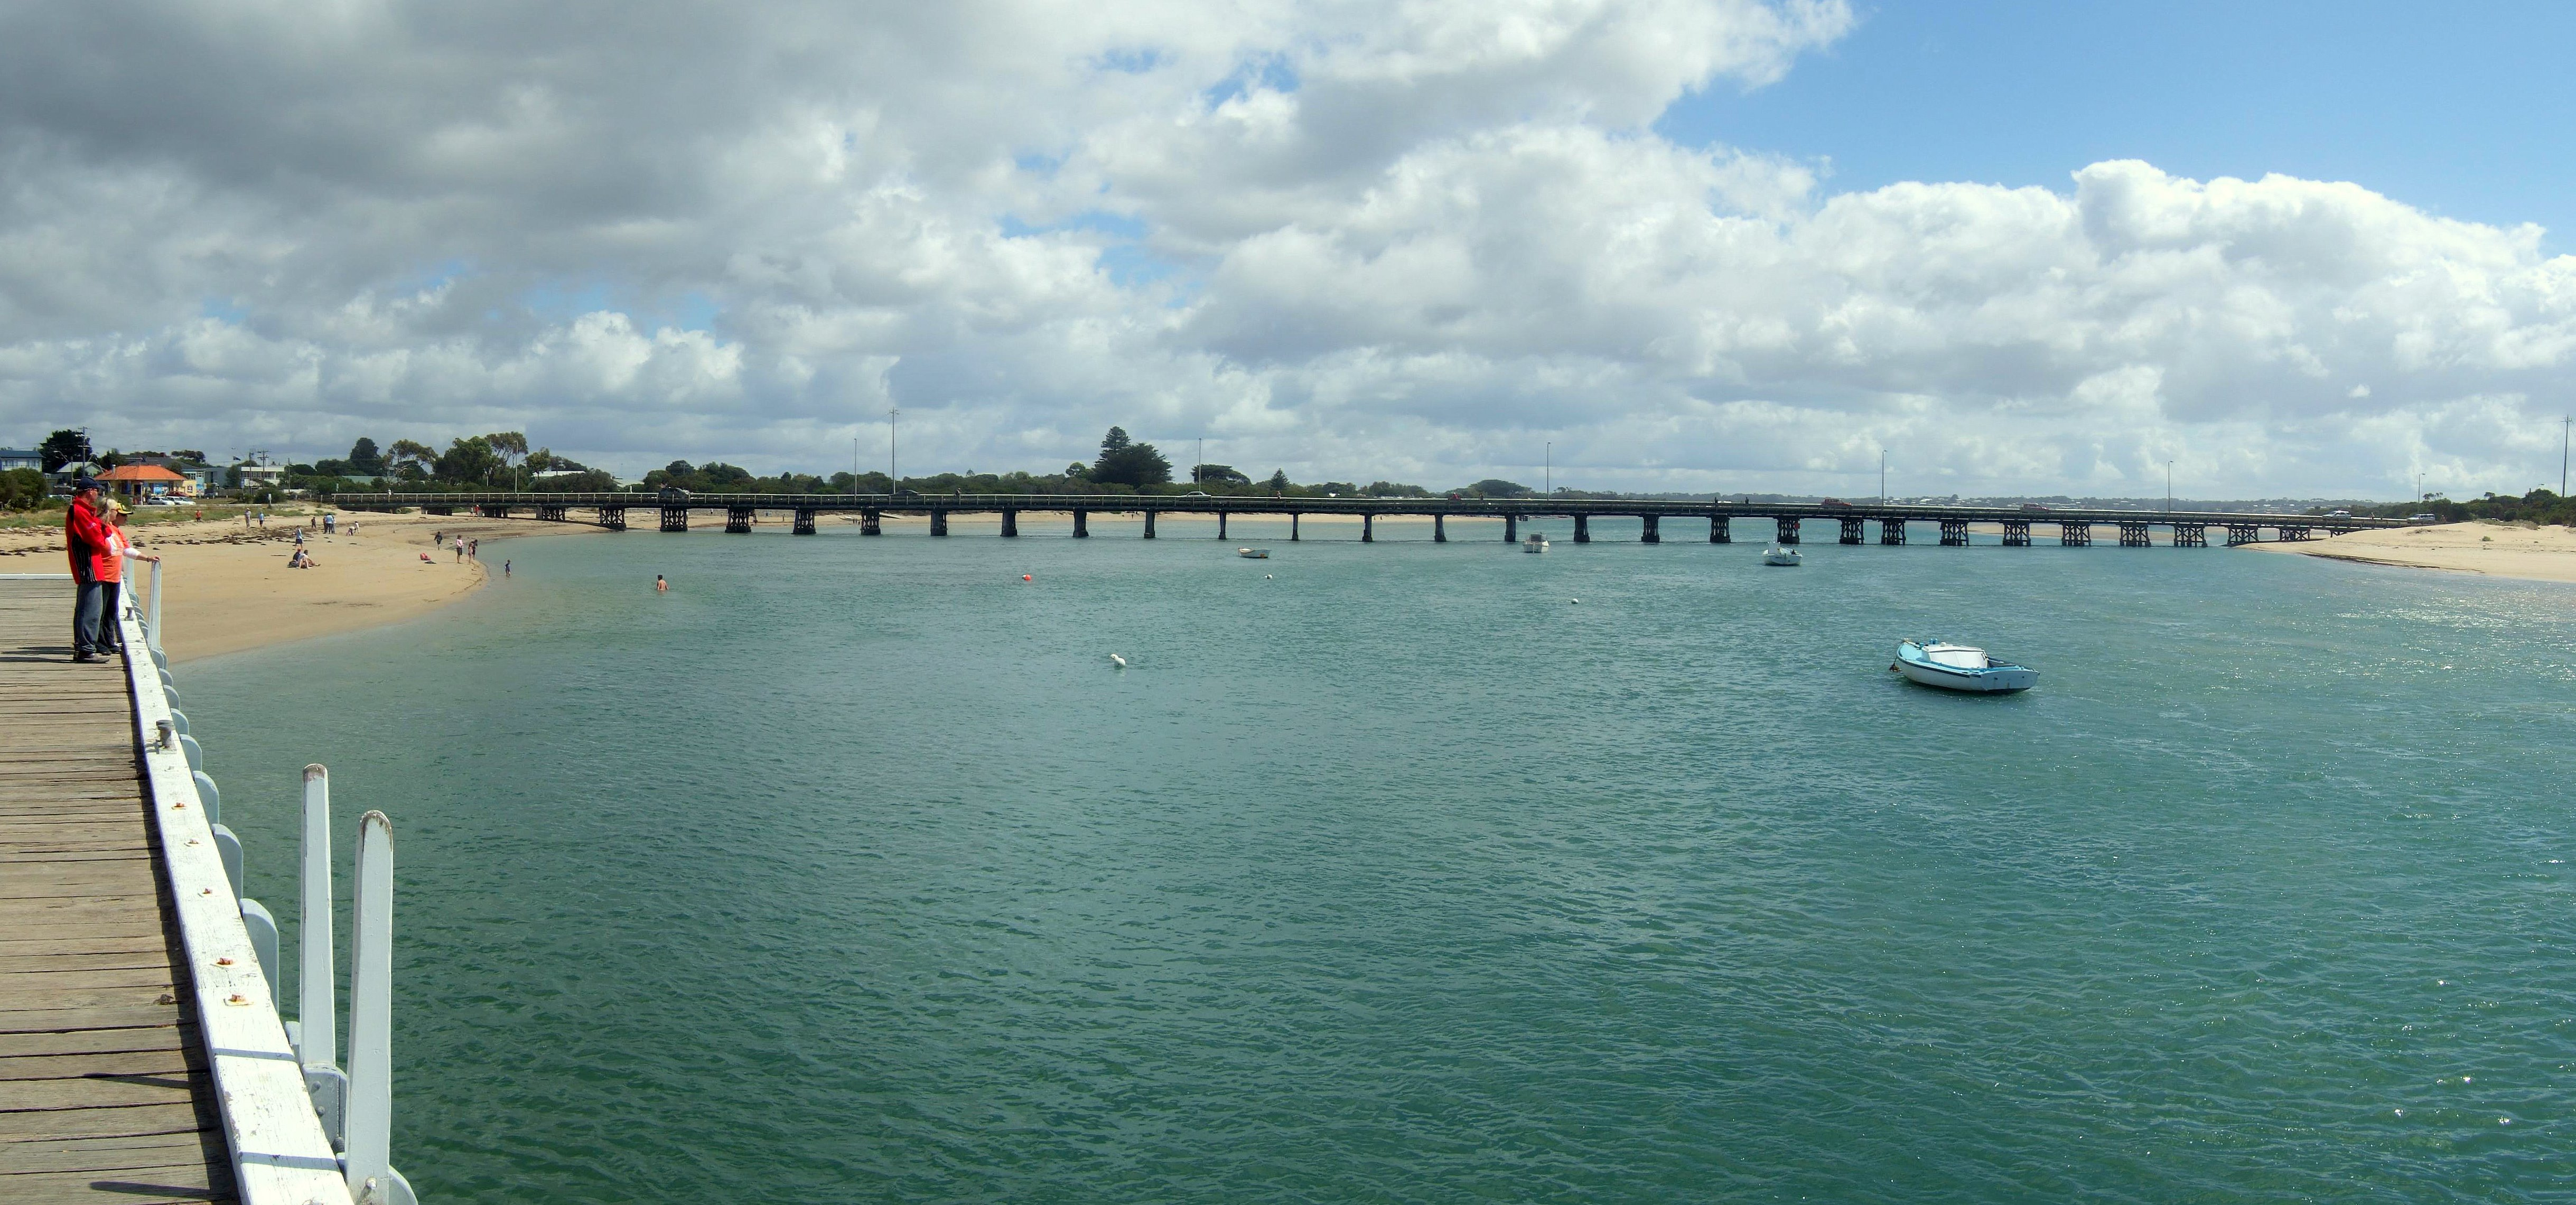 Barwon Heads Australia  city pictures gallery : Barwon Heads bridge, Victoria, Australia. Google Image Result for ...